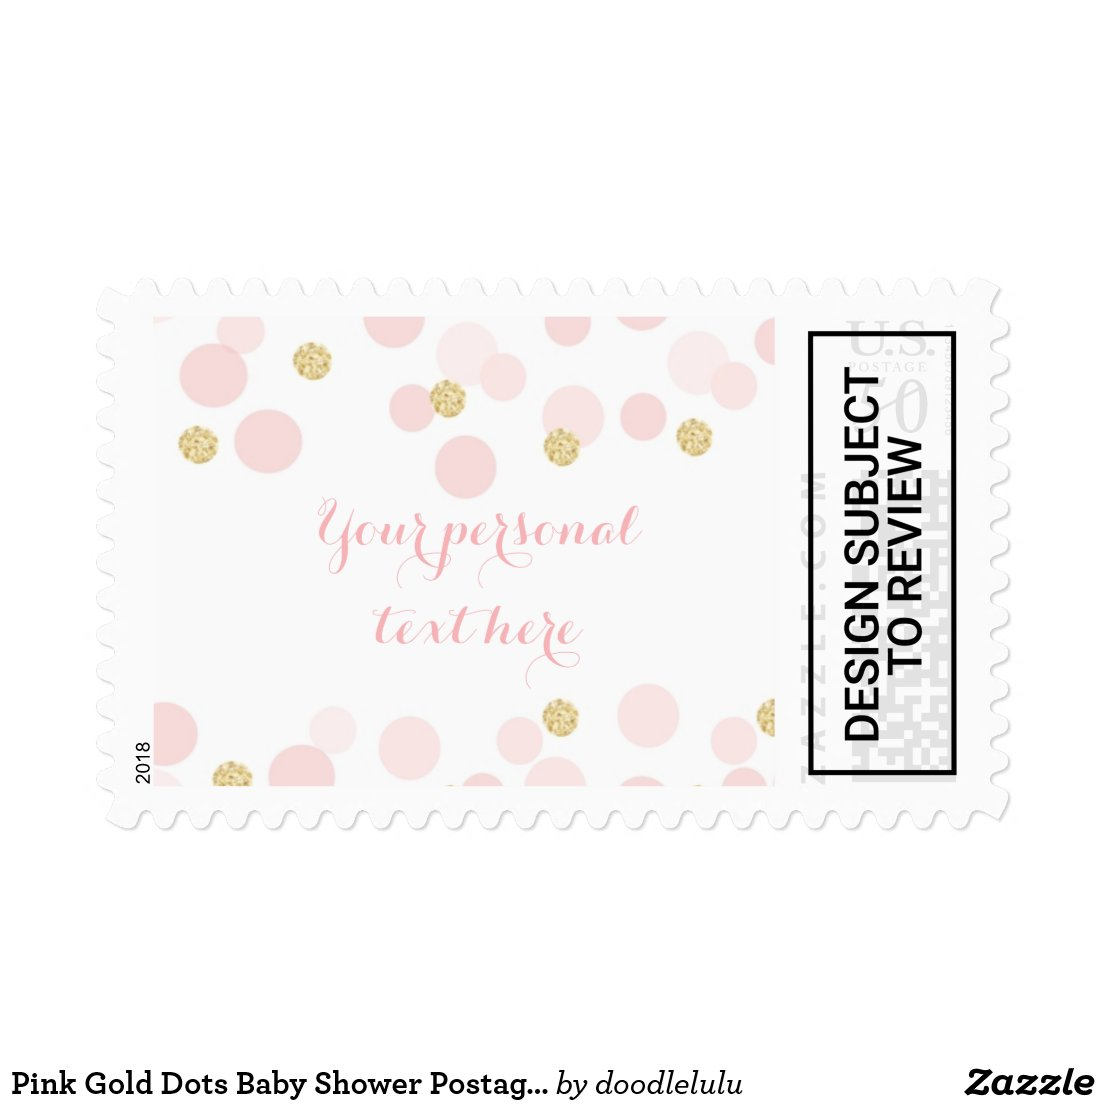 Pink Gold Dots Baby Shower Postage Stamp